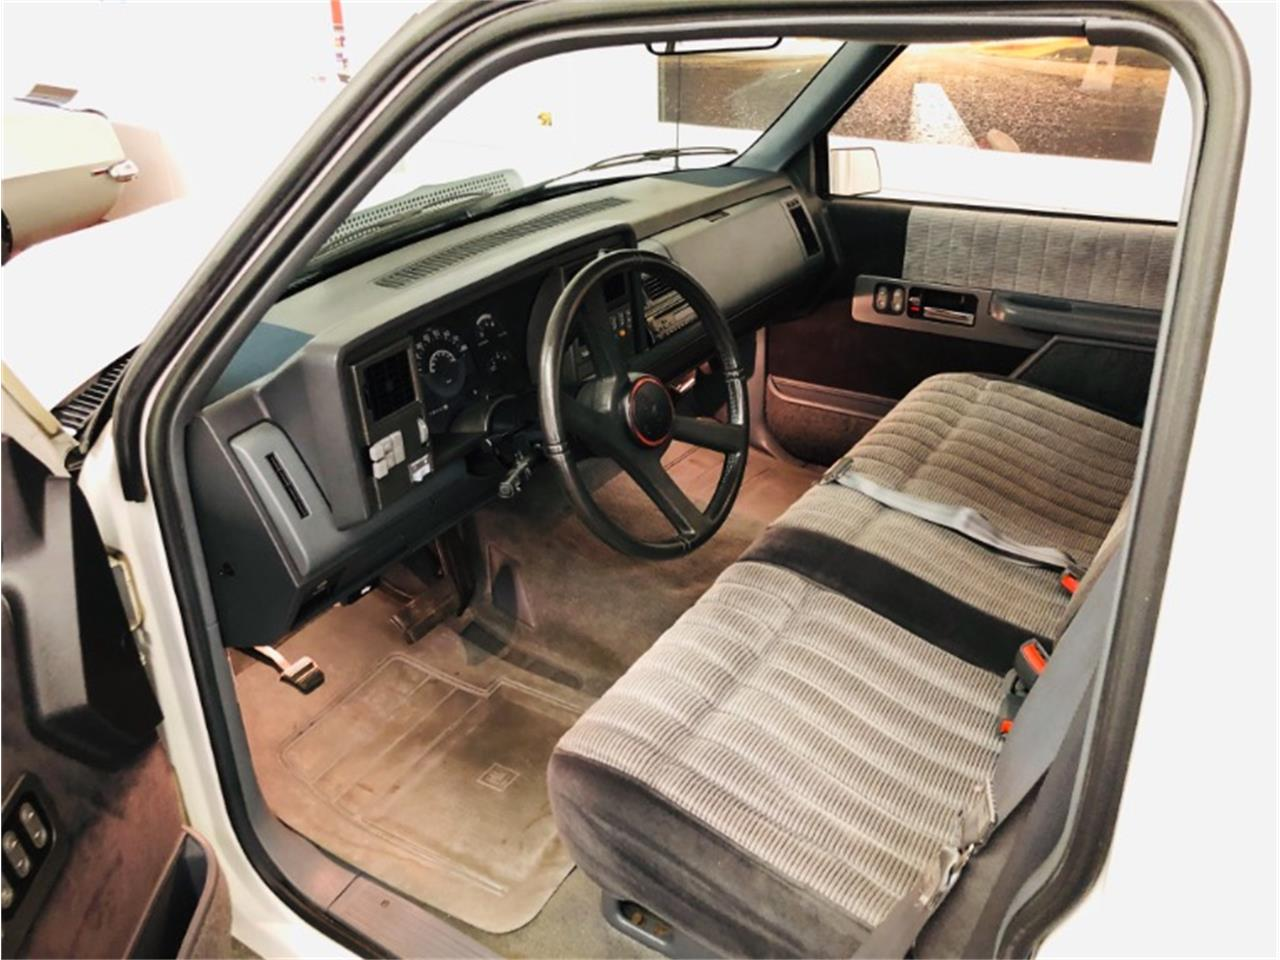 1990 GMC Pickup for sale in Mundelein, IL – photo 2